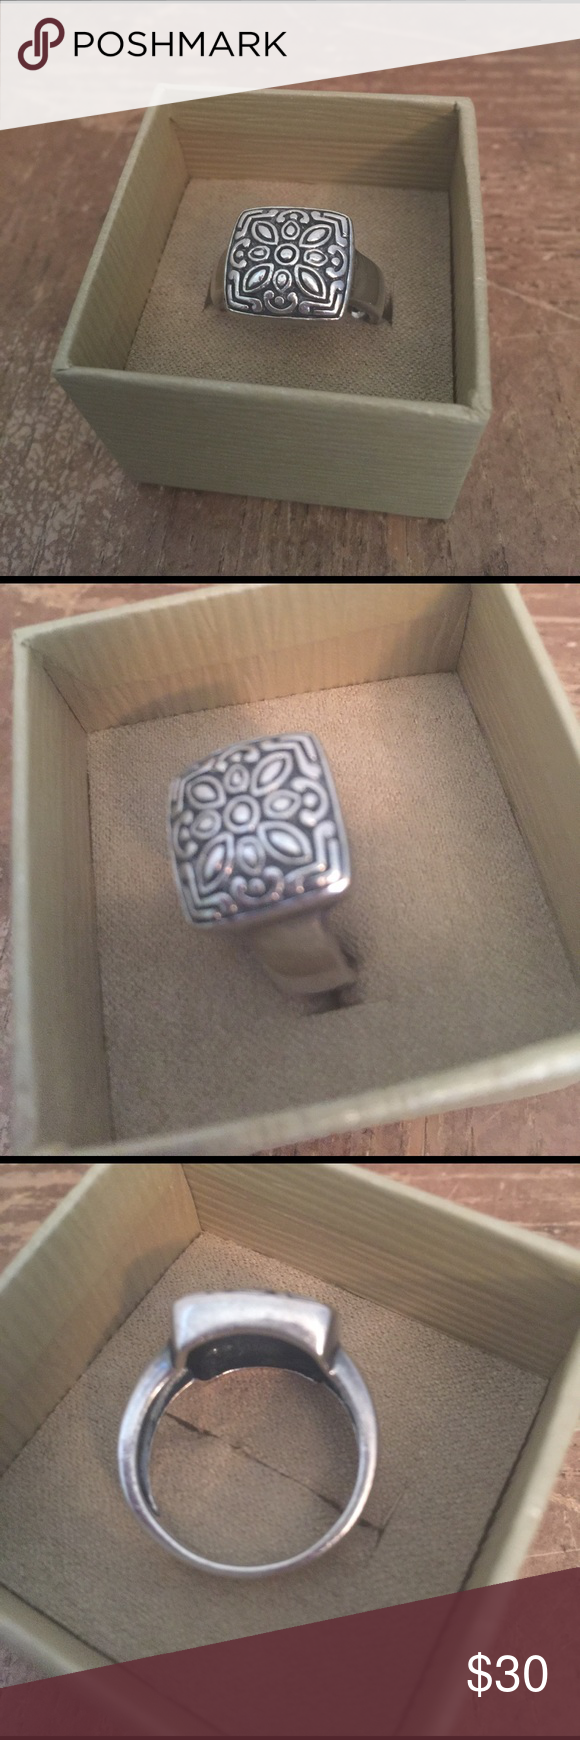 🌸Ring Sterling silver size 9 Vintage 925🌸 🌸Ring Sterling silver solid Vintage size 9🌸 Jewelry Rings